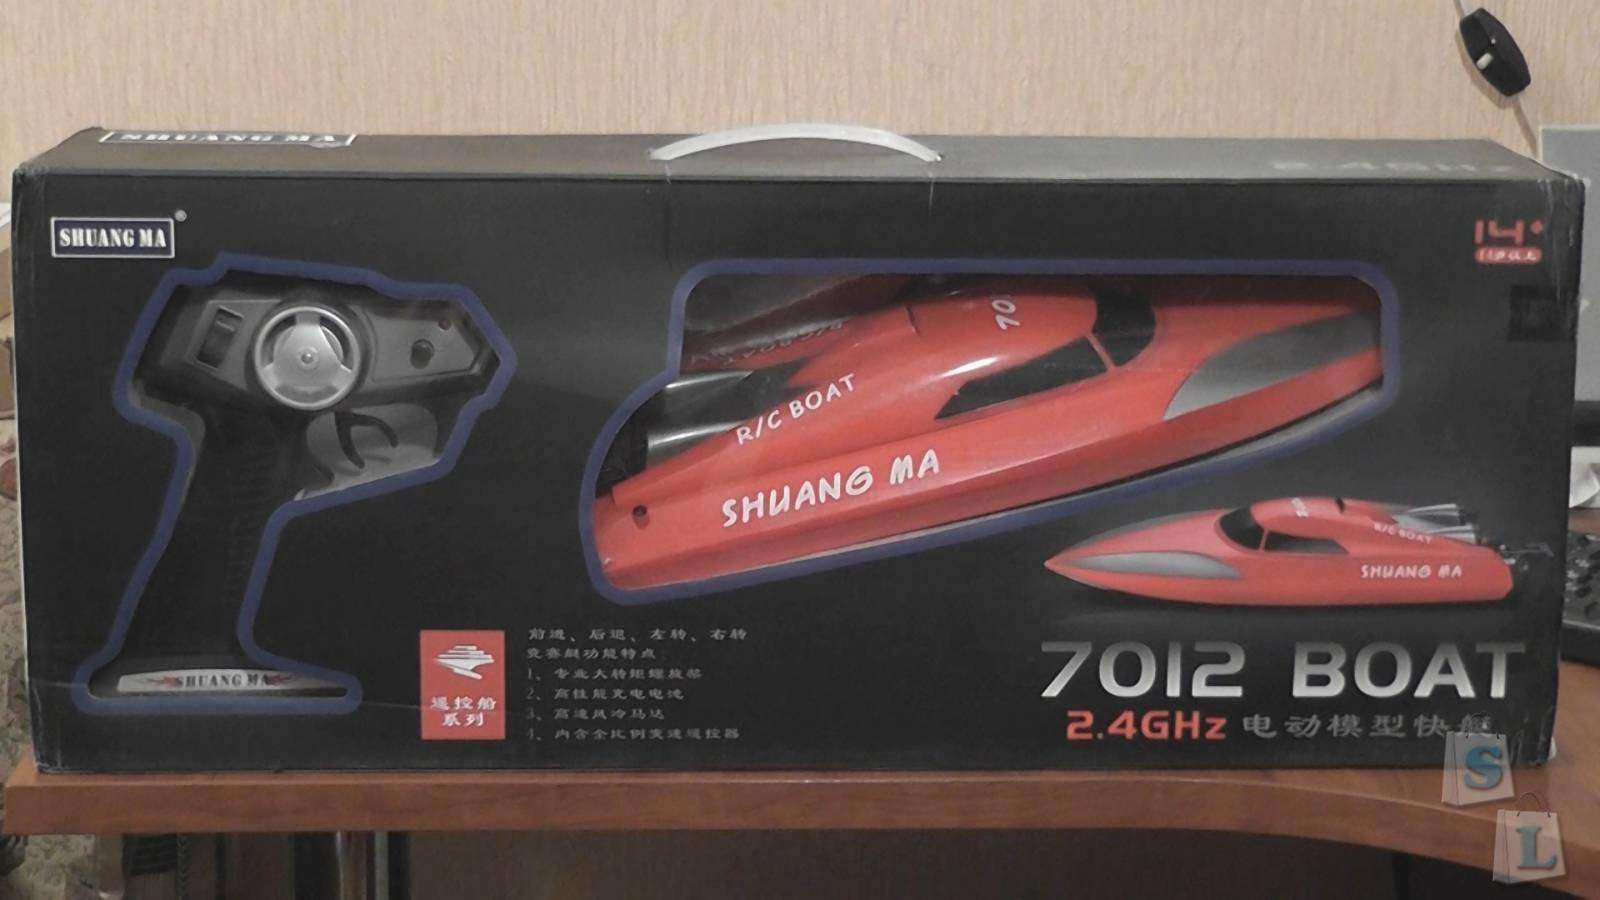 Banggood: Double Horse 7012 (Shuang Ma 7012) 2.4GHz, 2Ch High Speed RC Racing Boat